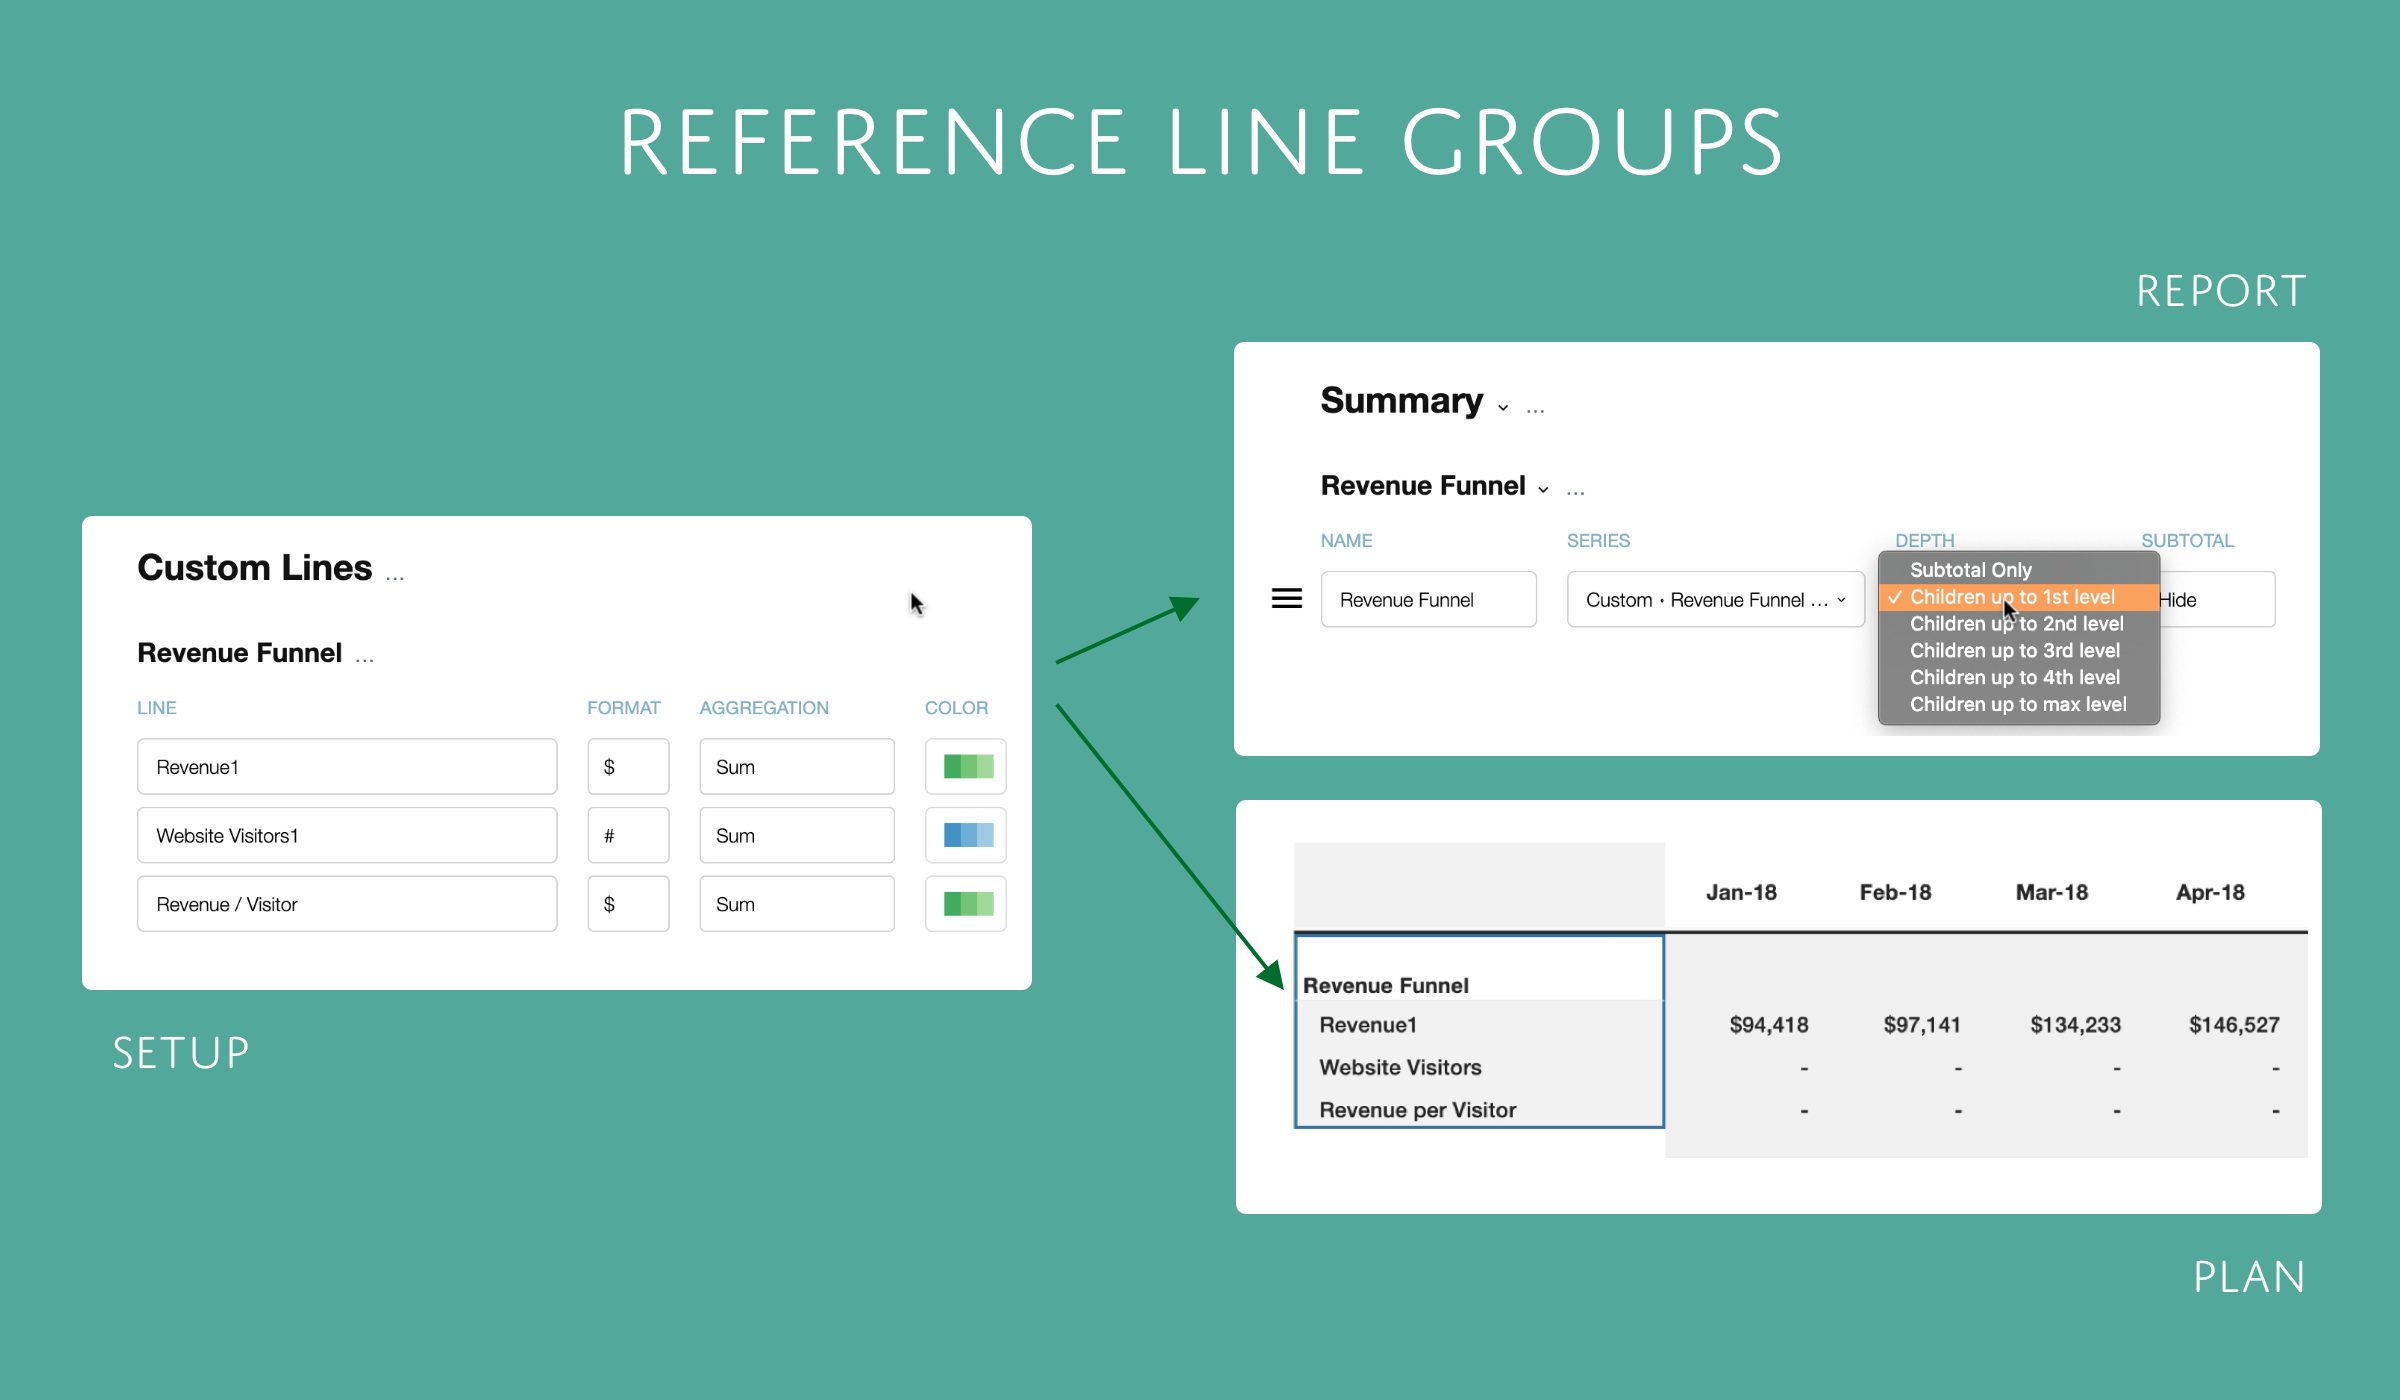 Reference Line Groups